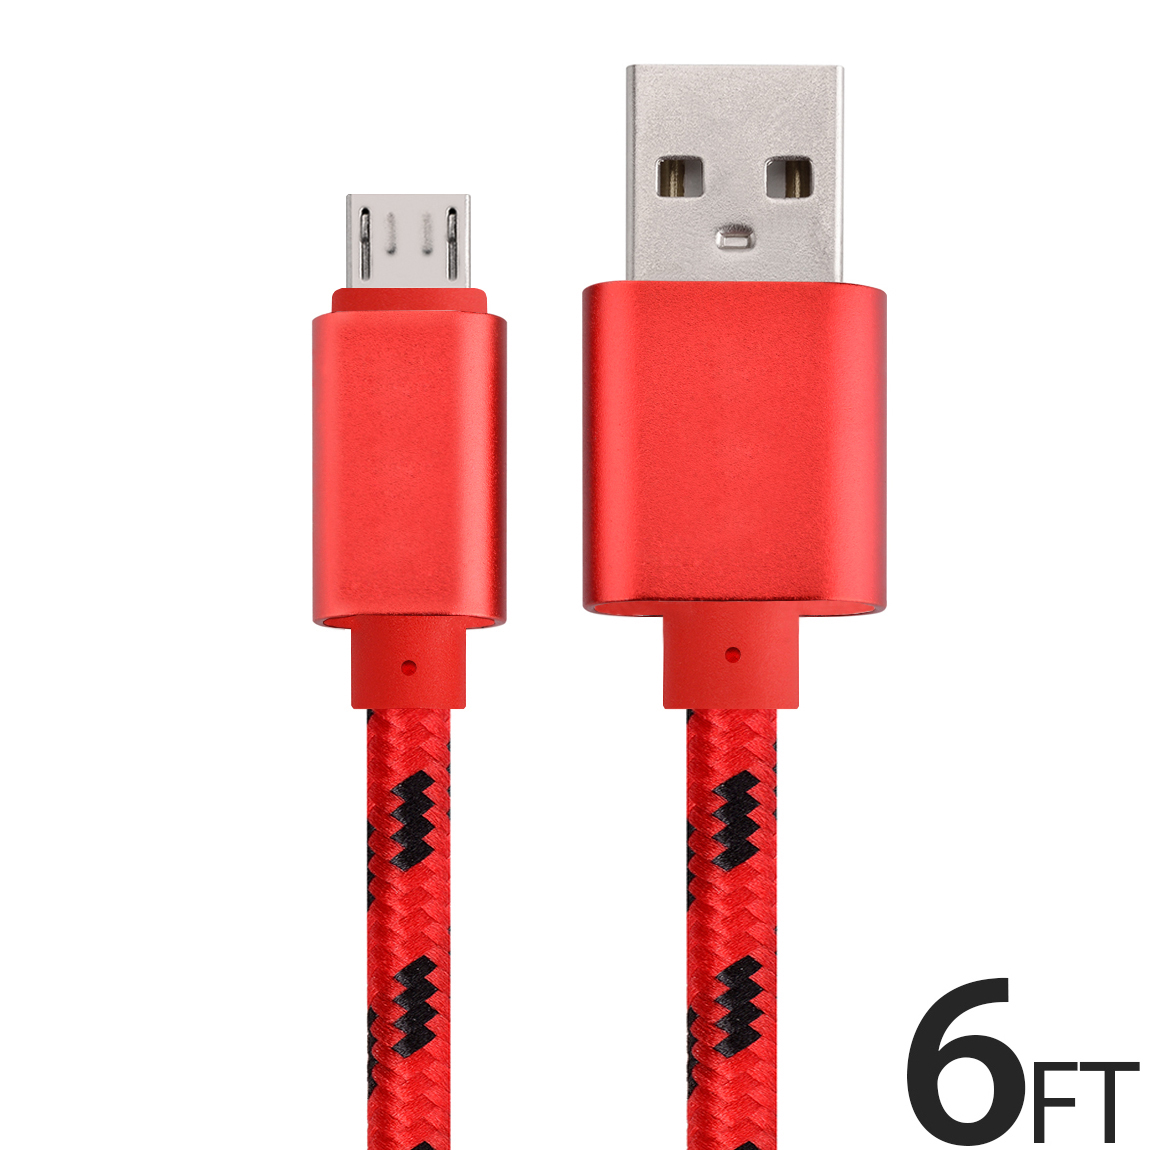 Micro USB Cable Charger for Android, FREEDOMTECH 6ft USB to Micro USB Cable Charger Cord High Speed USB2.0 Sync and Charging Cable for Samsung, HTC, Motorola, Nokia, Kindle, MP3, Tablet and more